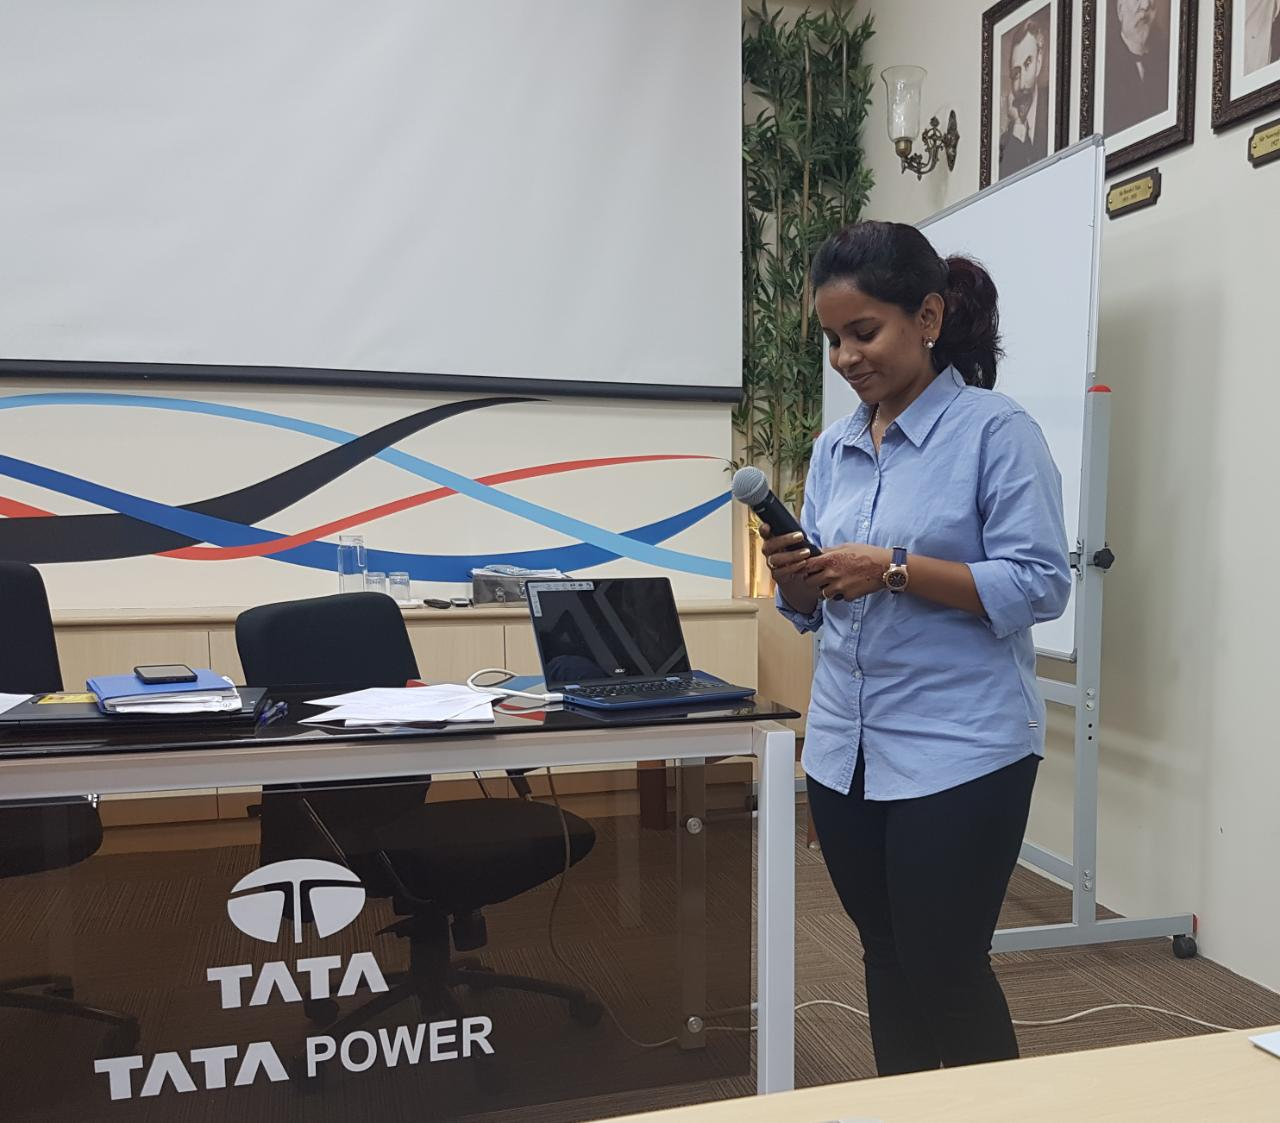 Awareness talk about bariatric surgery for the employees of Tata Power. Registered Dietician Mariam Lakdawala talking about nutritional tips for prevention of obesity especially for people who work in shifts.